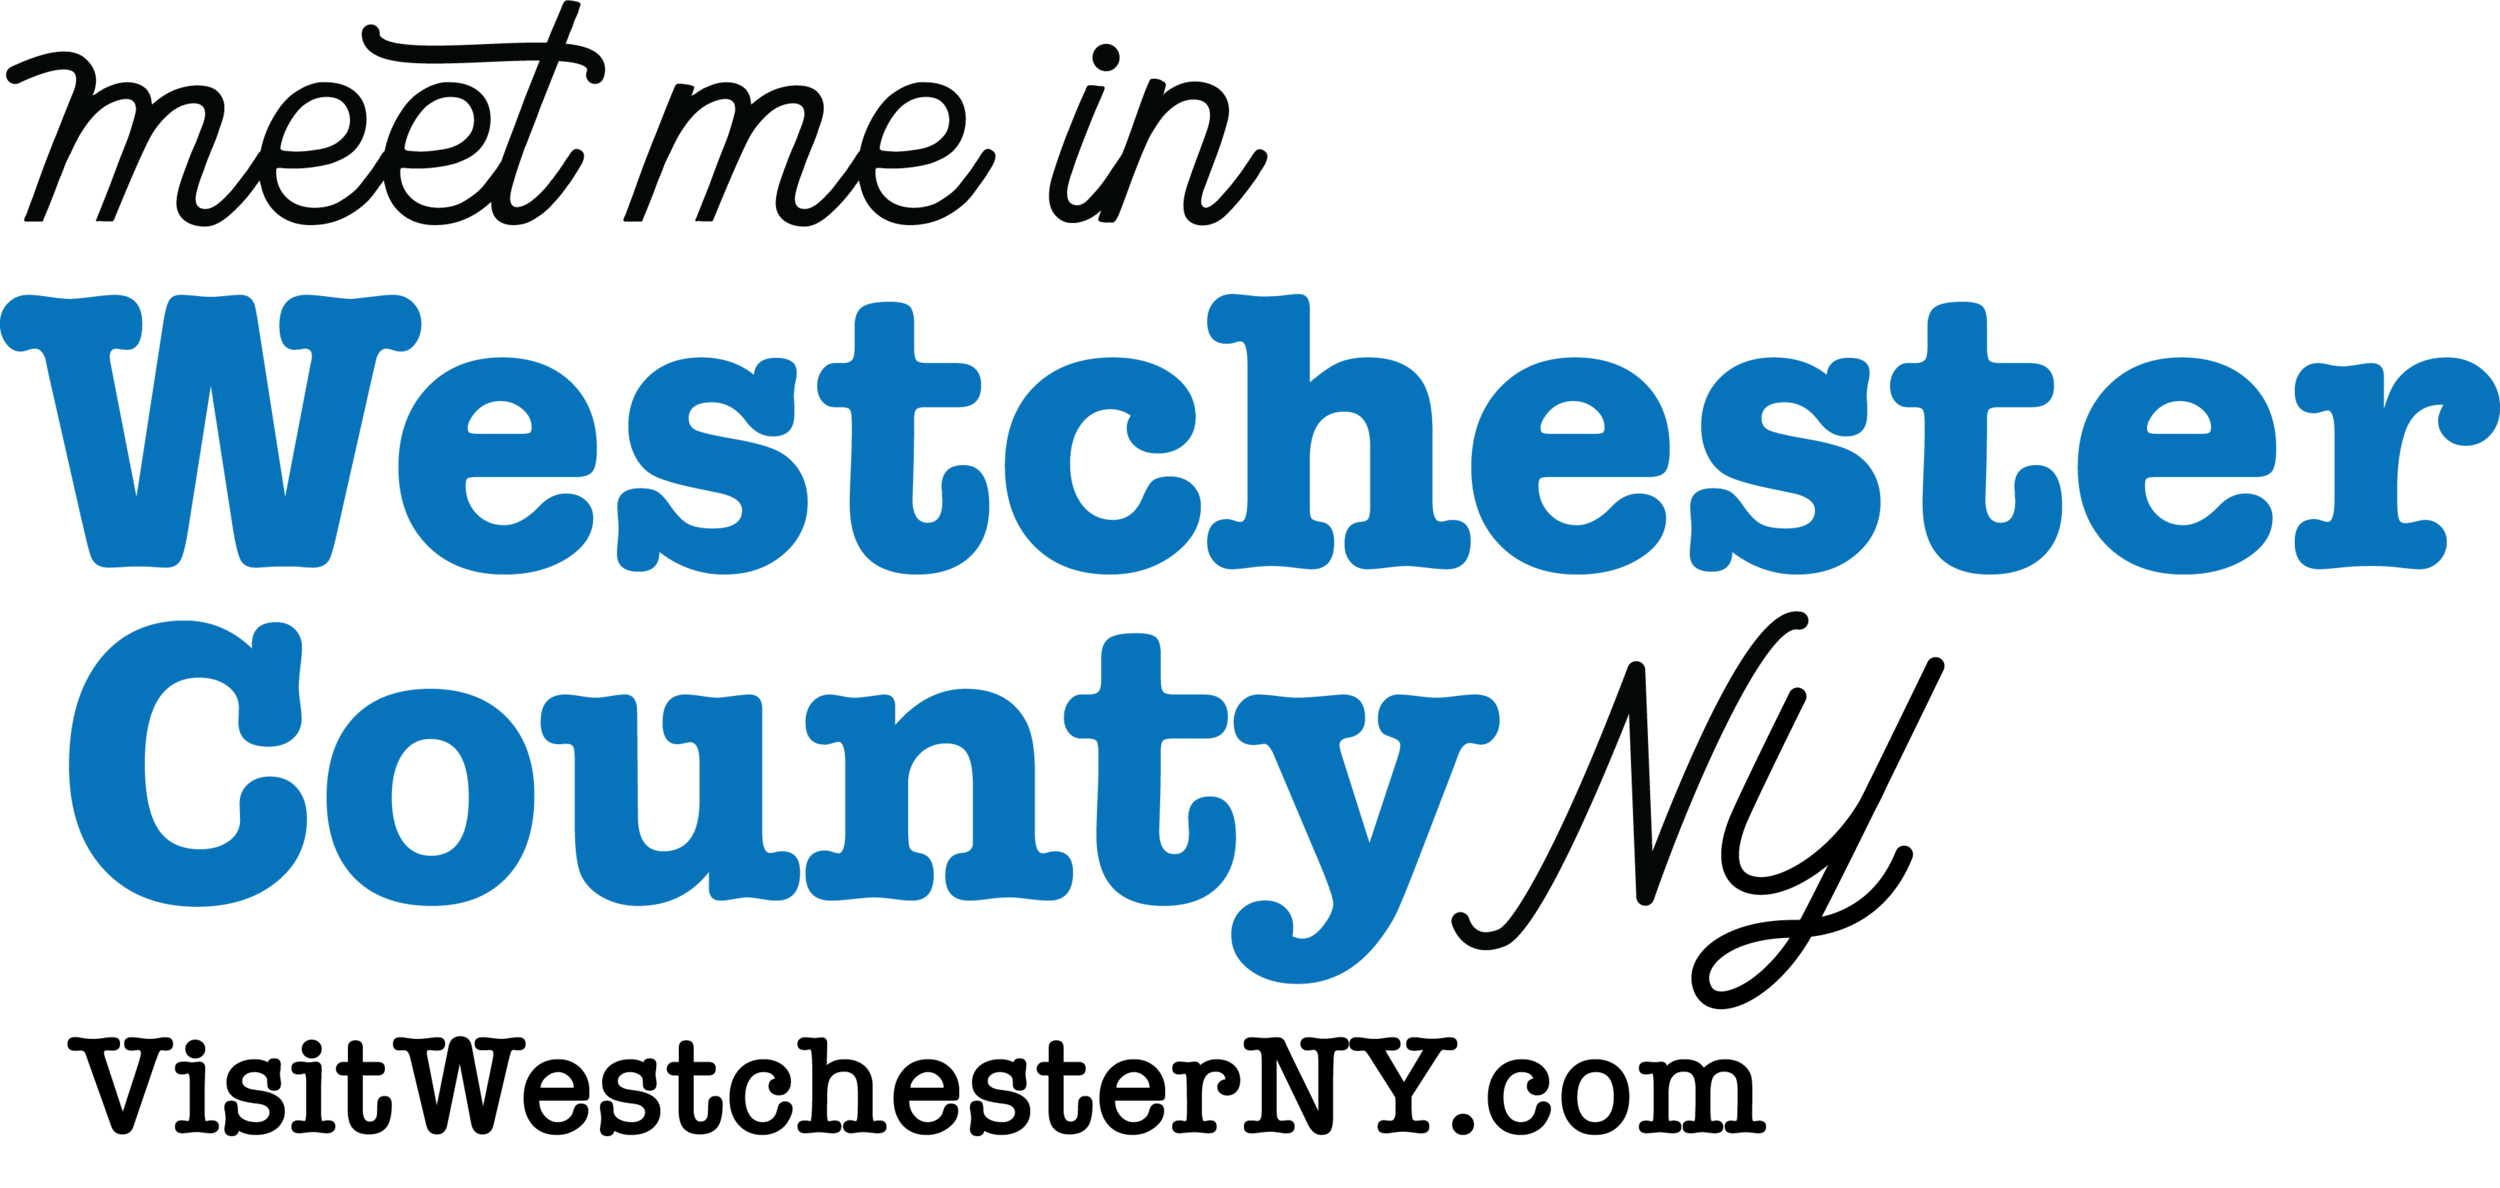 WestchesterLogo_2017_Blue+Black_WithSite.png